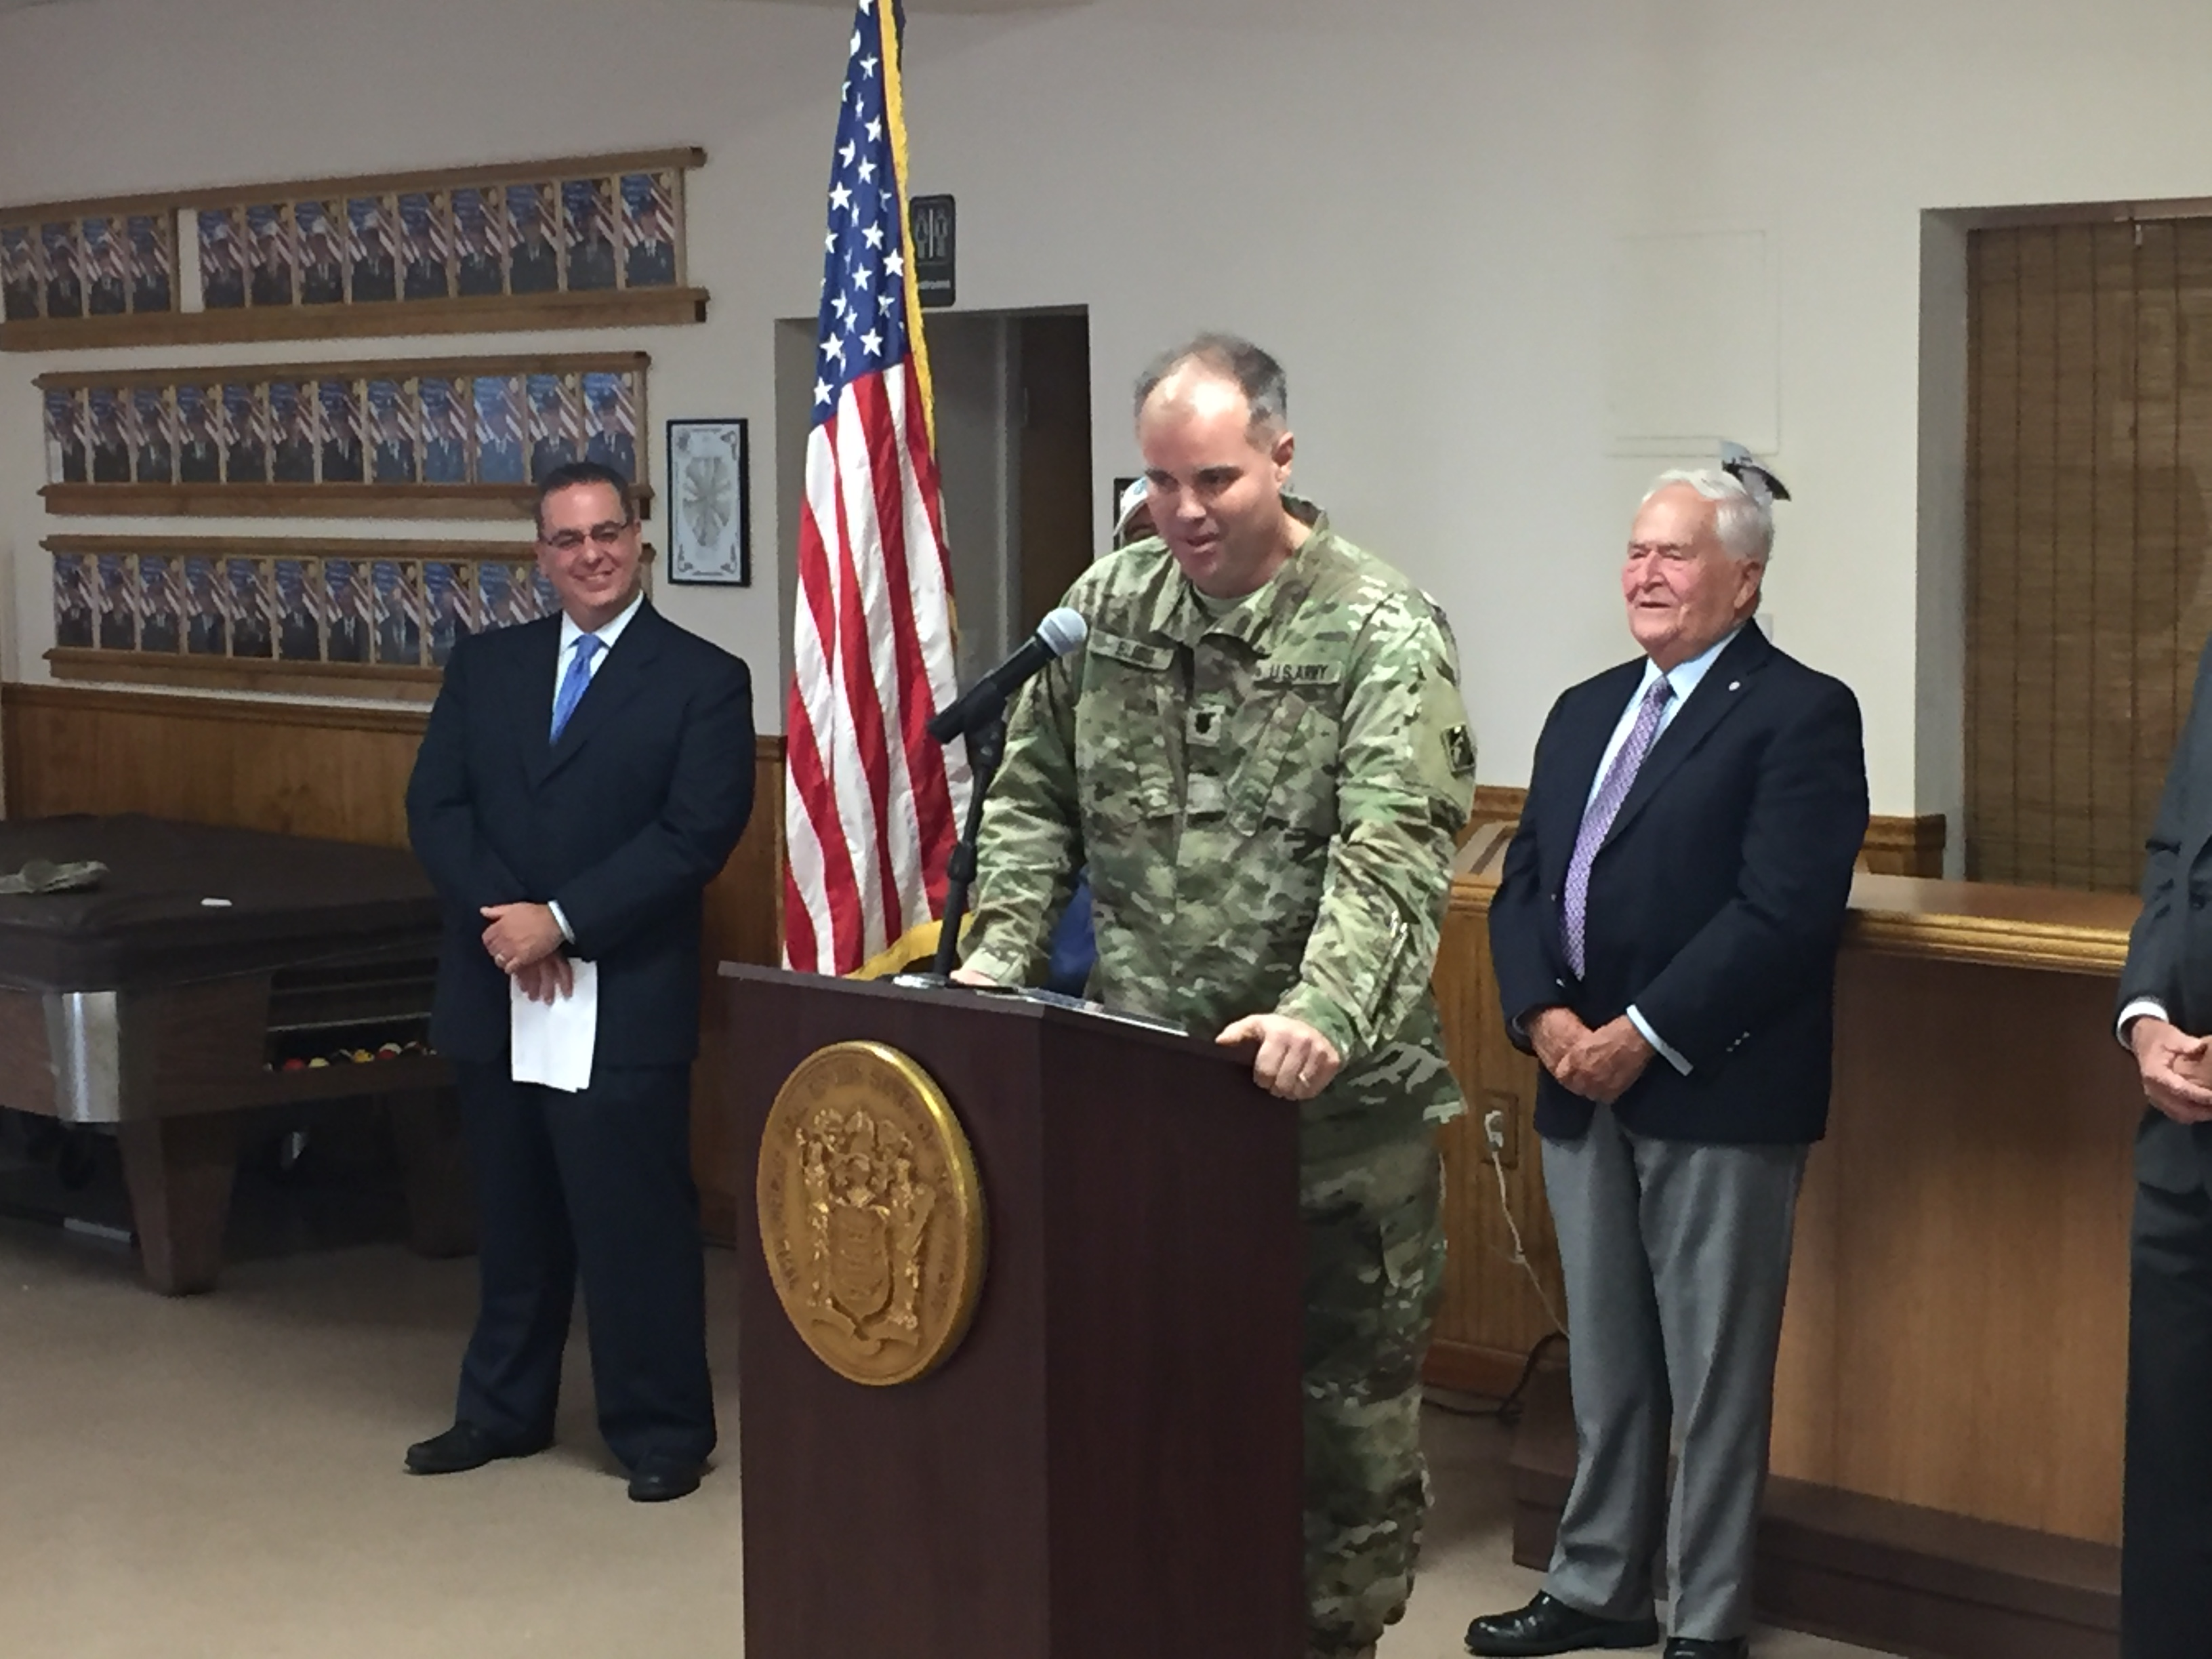 Lt. Colonel Michael Bliss announces the northern barrier island beach replenishment project. (Photo: Daniel Nee)